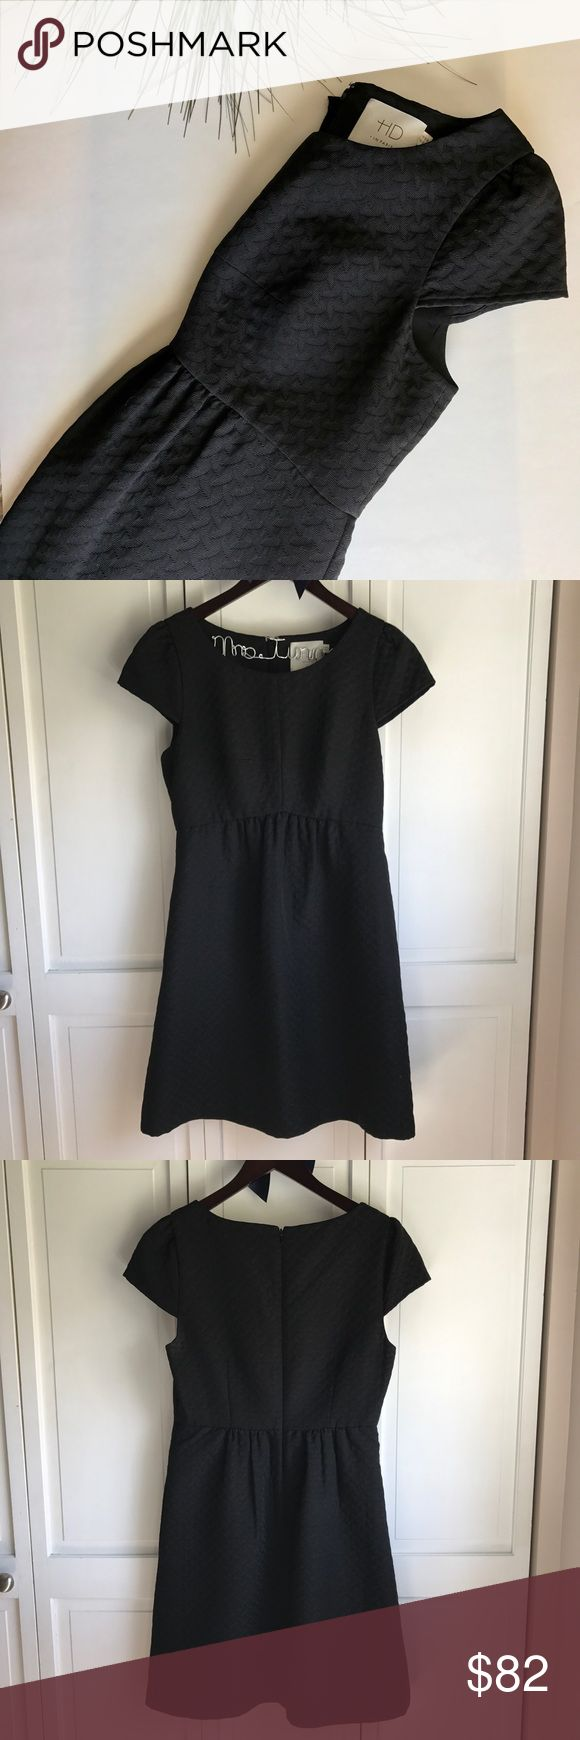 Anthropologie Dress Black patterned cap sleeve dress from Anthropologie by HD Paris. Size 6, in perfect condition! Length: 34.5in Waist: 14.5in. Anthropologie Dresses Midi